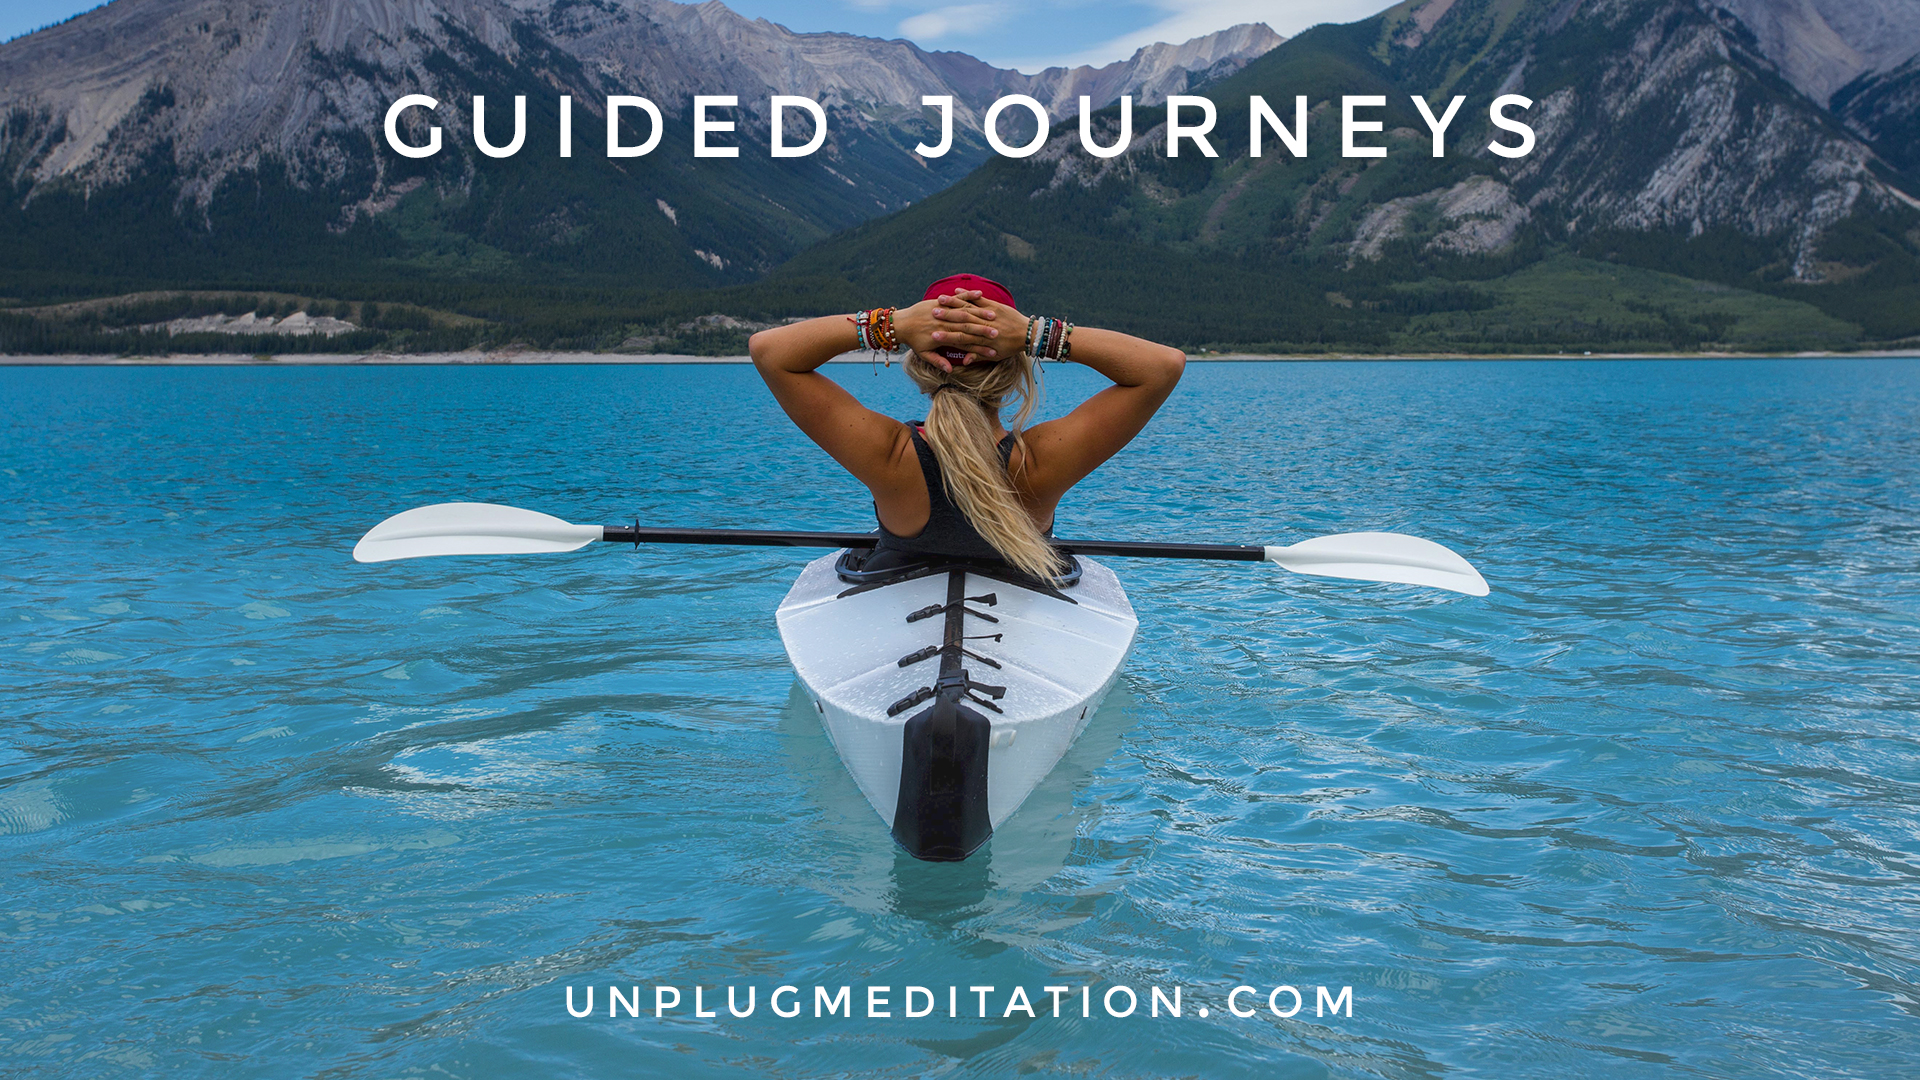 Unplug-Meditation-VHX-Covers-Artwork_Guided-Journeys.jpg